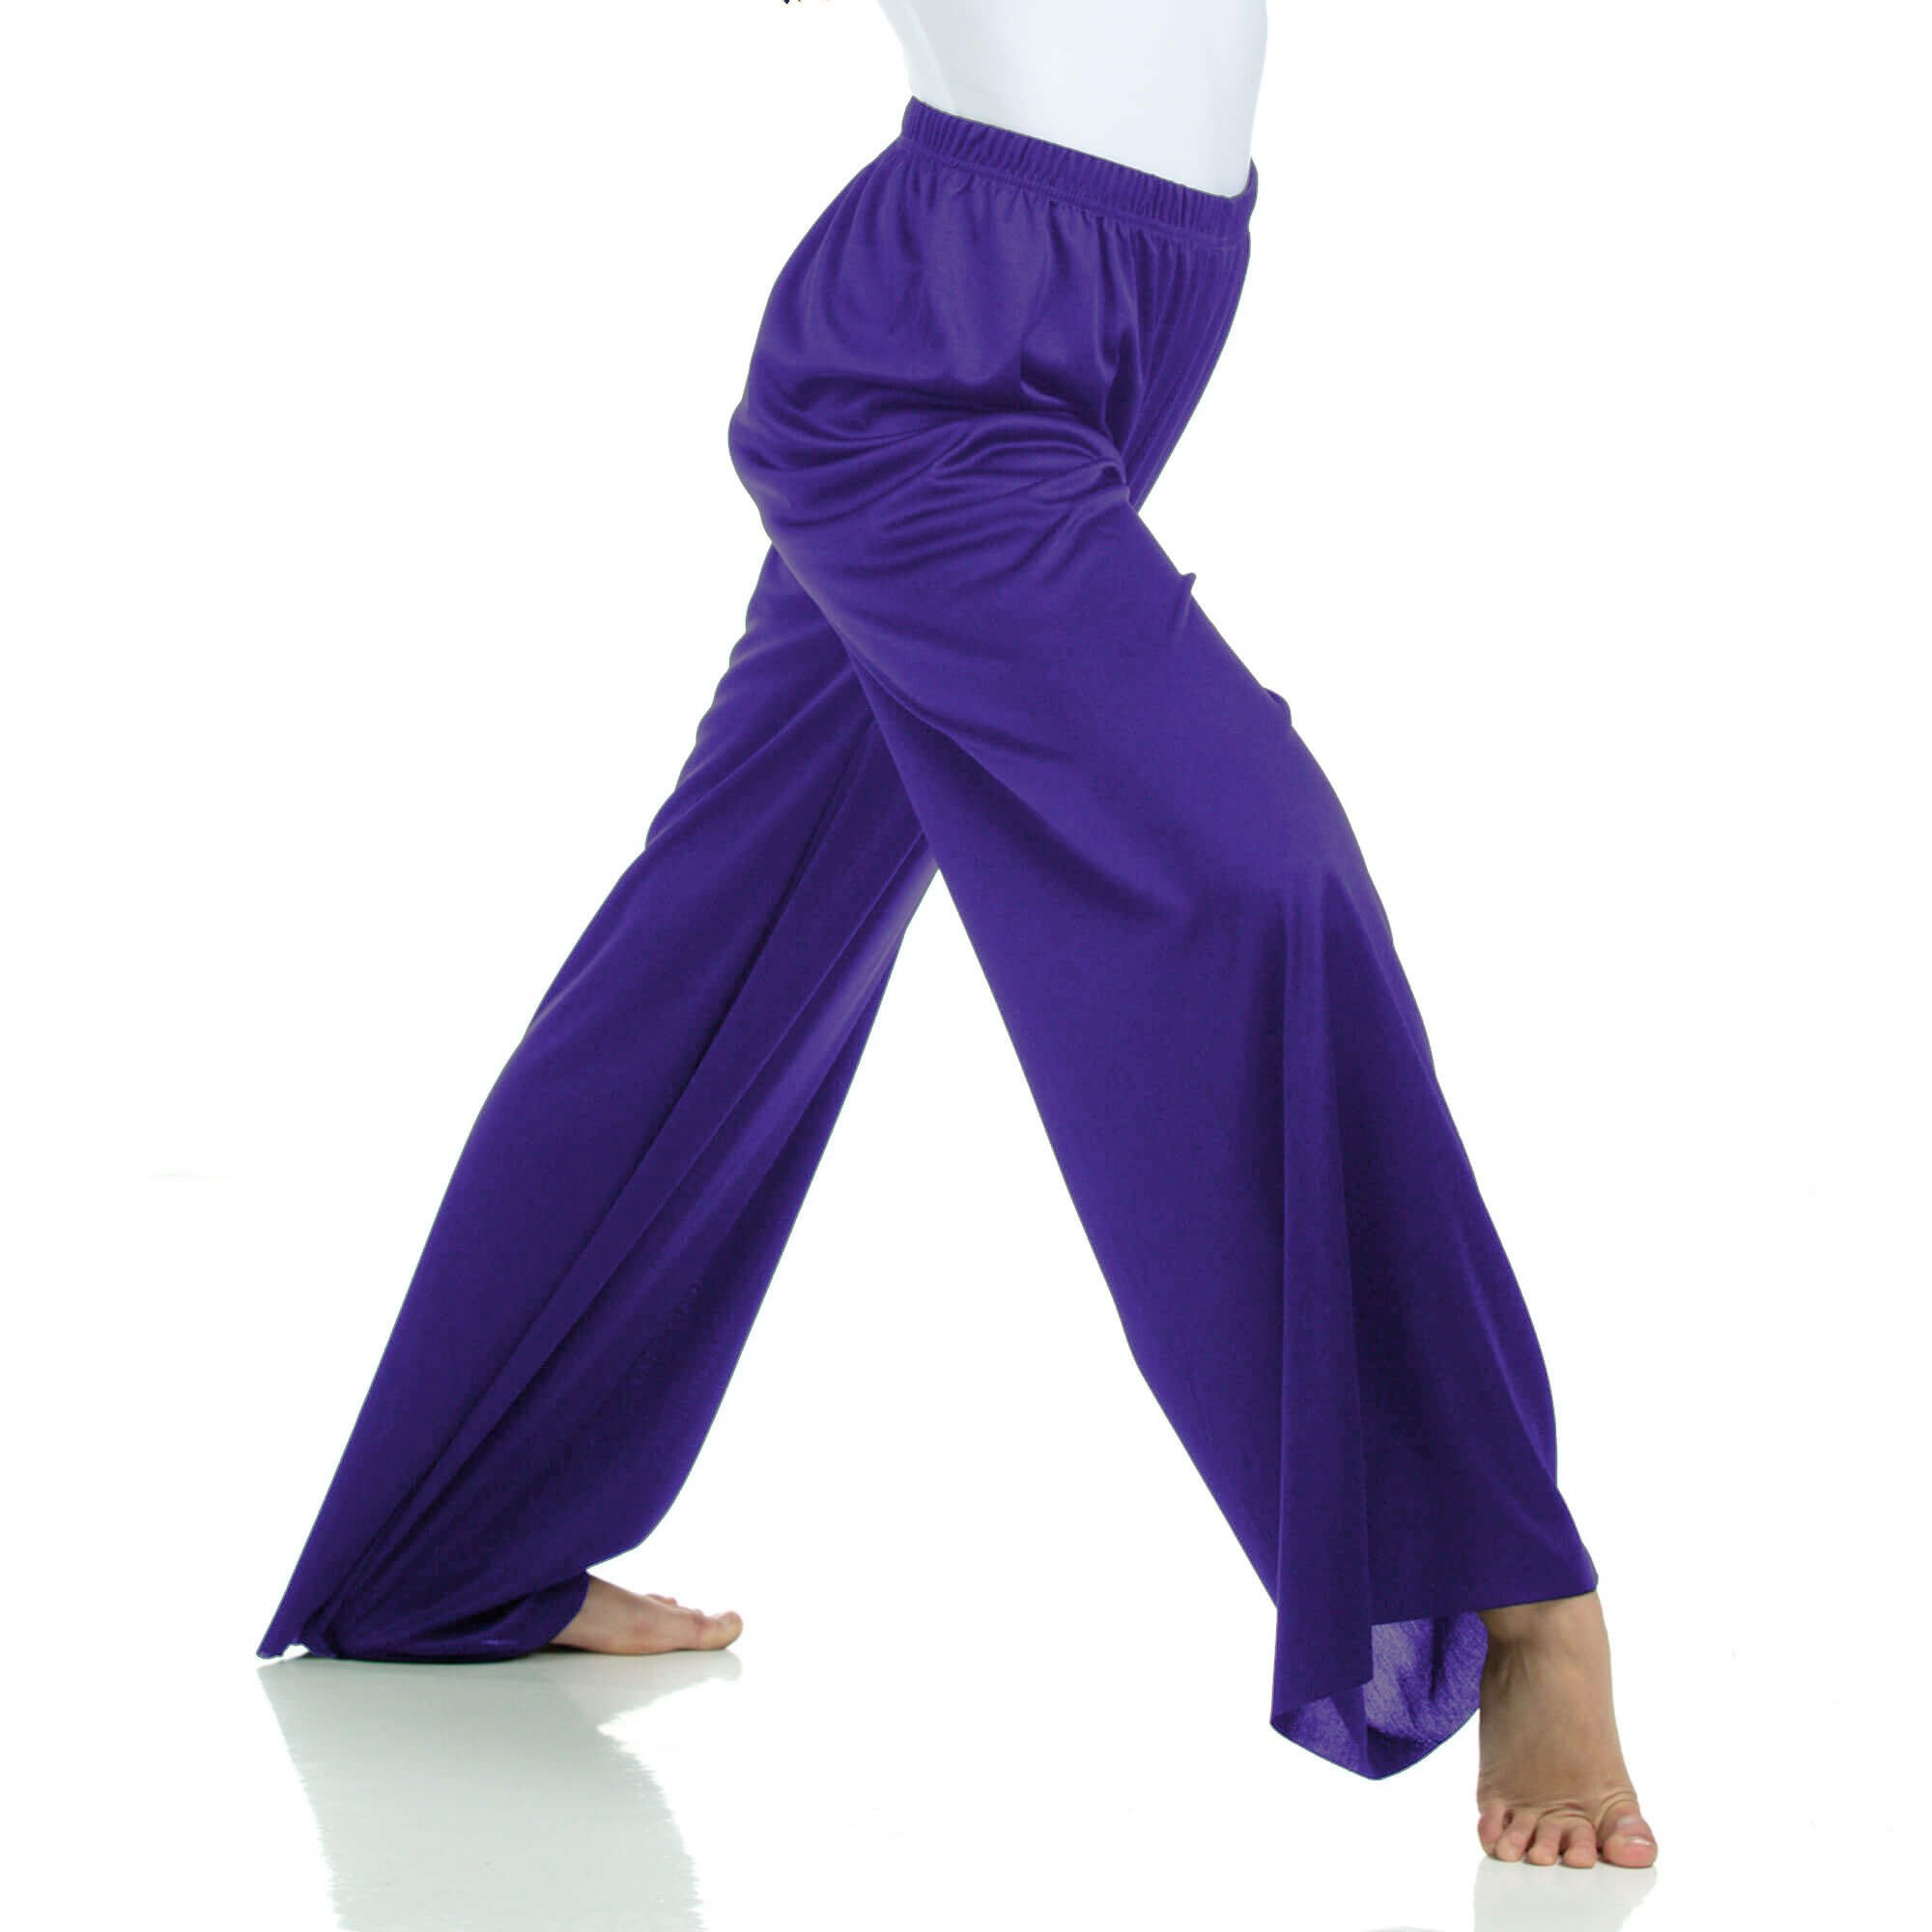 Pull-On Unisex Pants - Click Image to Close